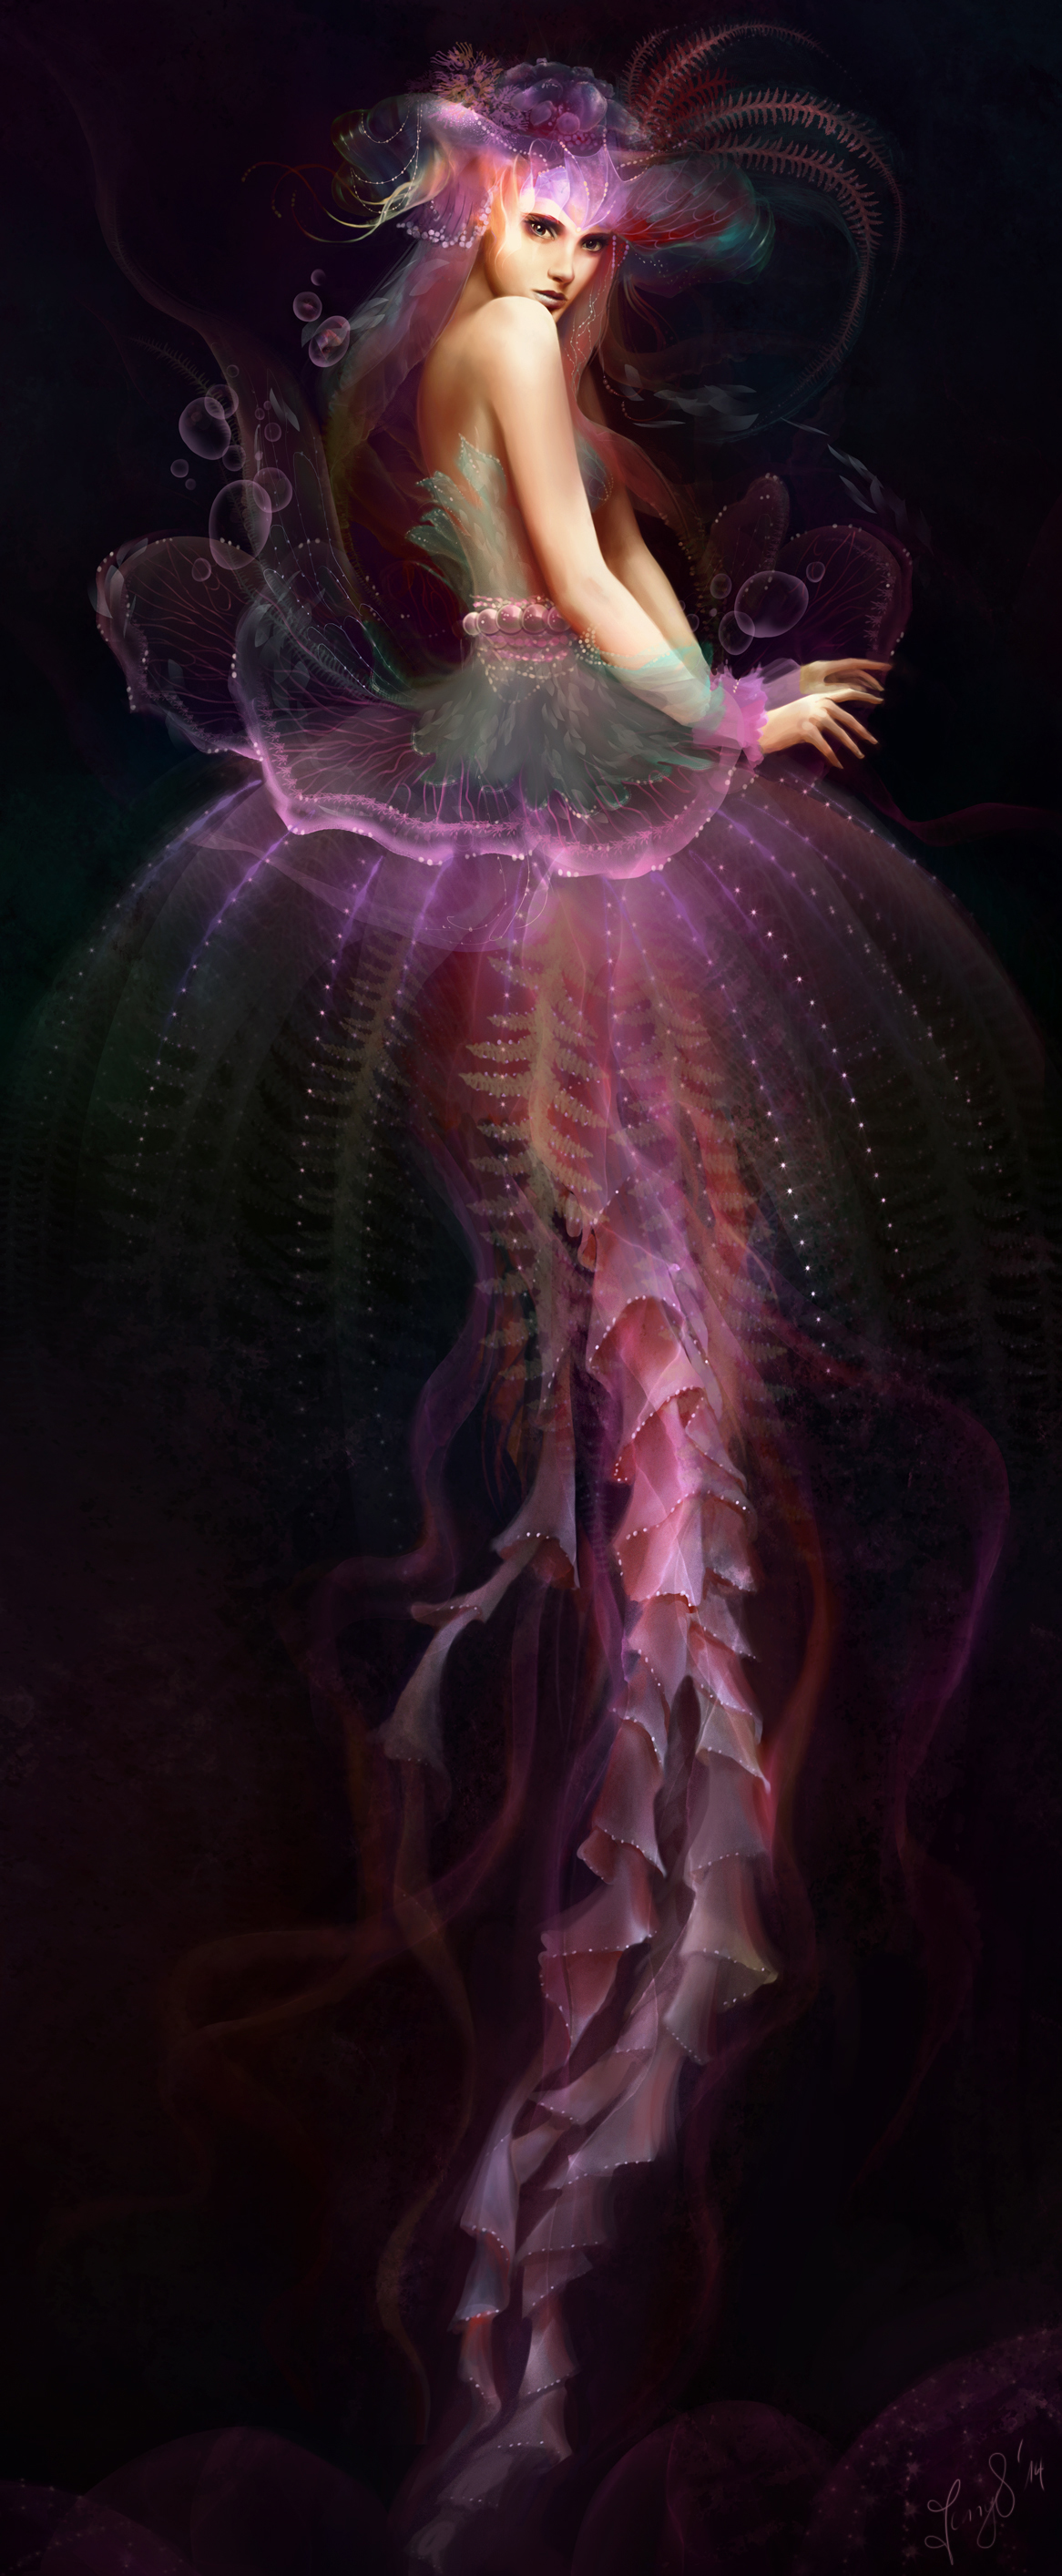 The jellyfish queen by jennyeight on deviantart for Jelly fish art